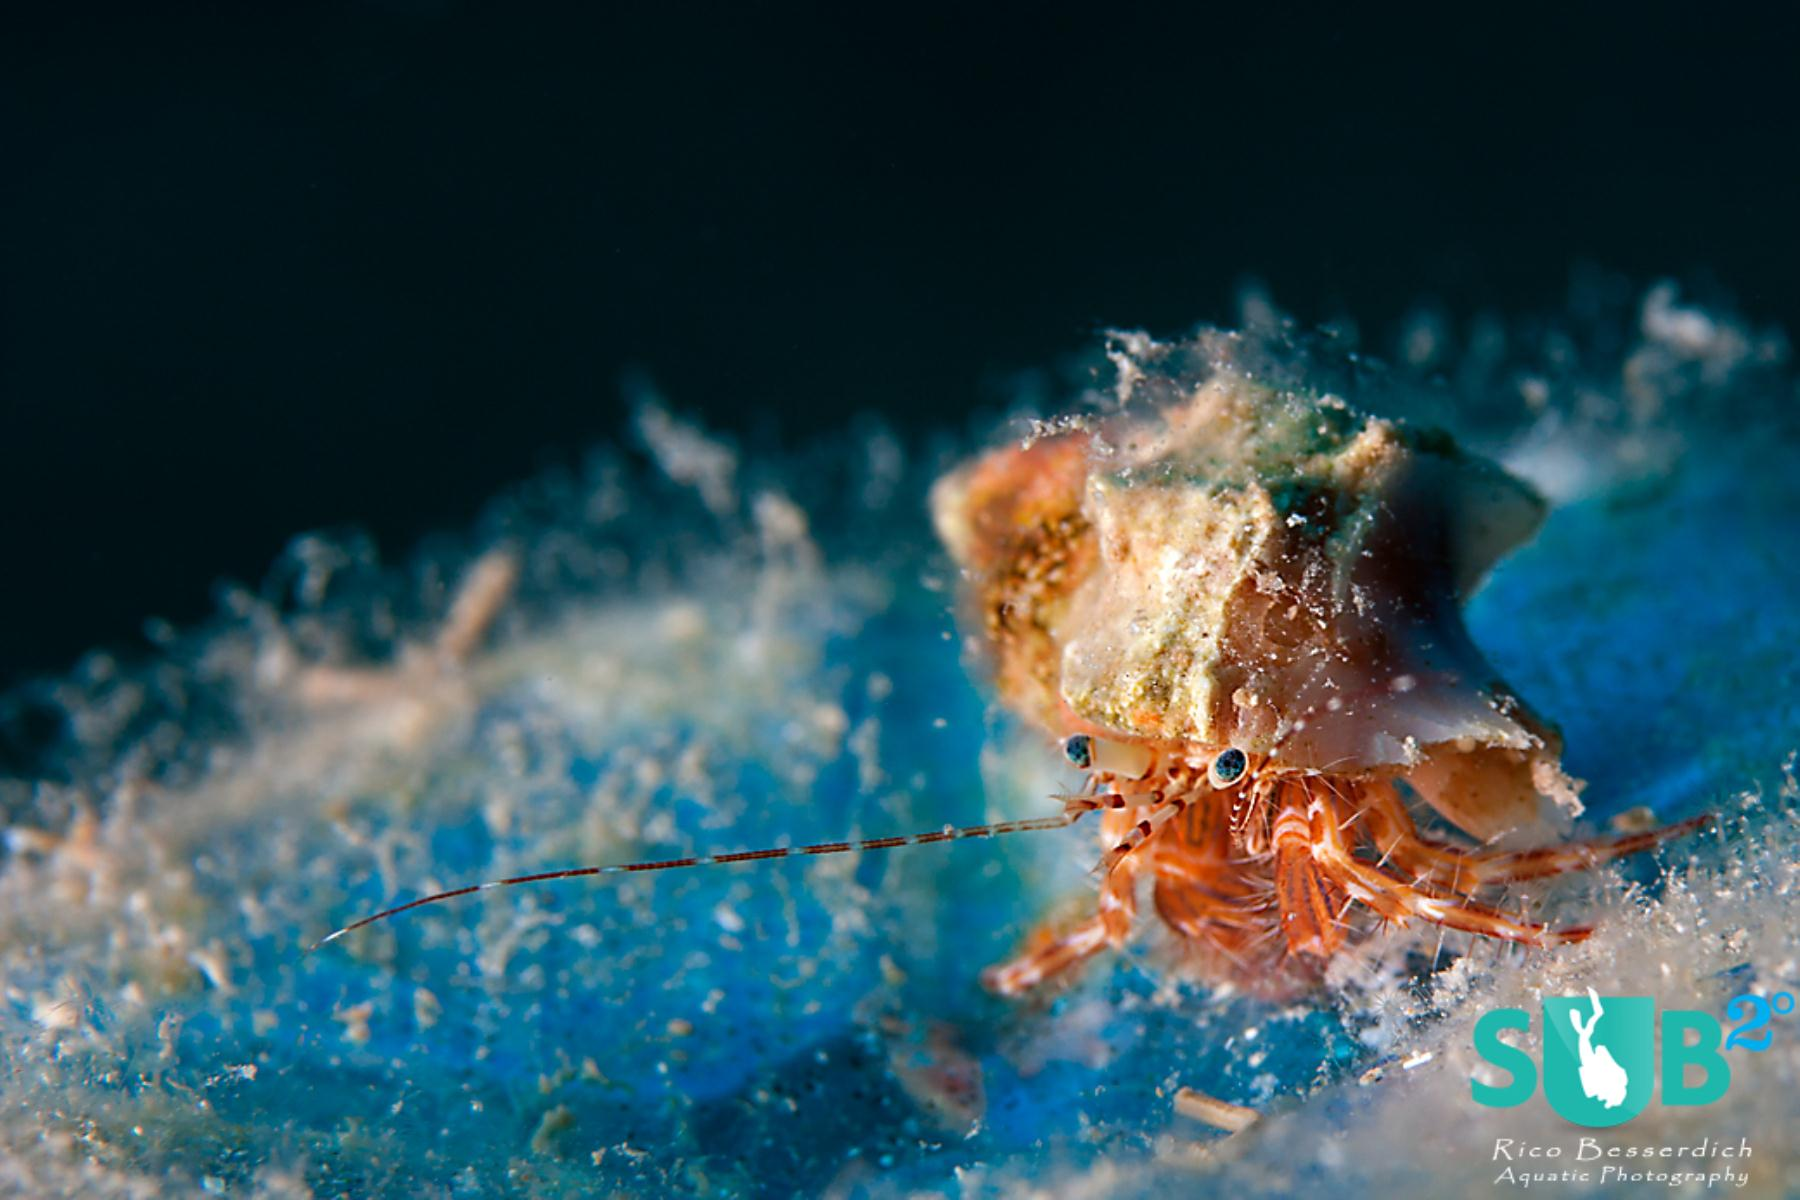 This tiny hermit crab is placed on the lower right intersection of the rule of thirds grid.